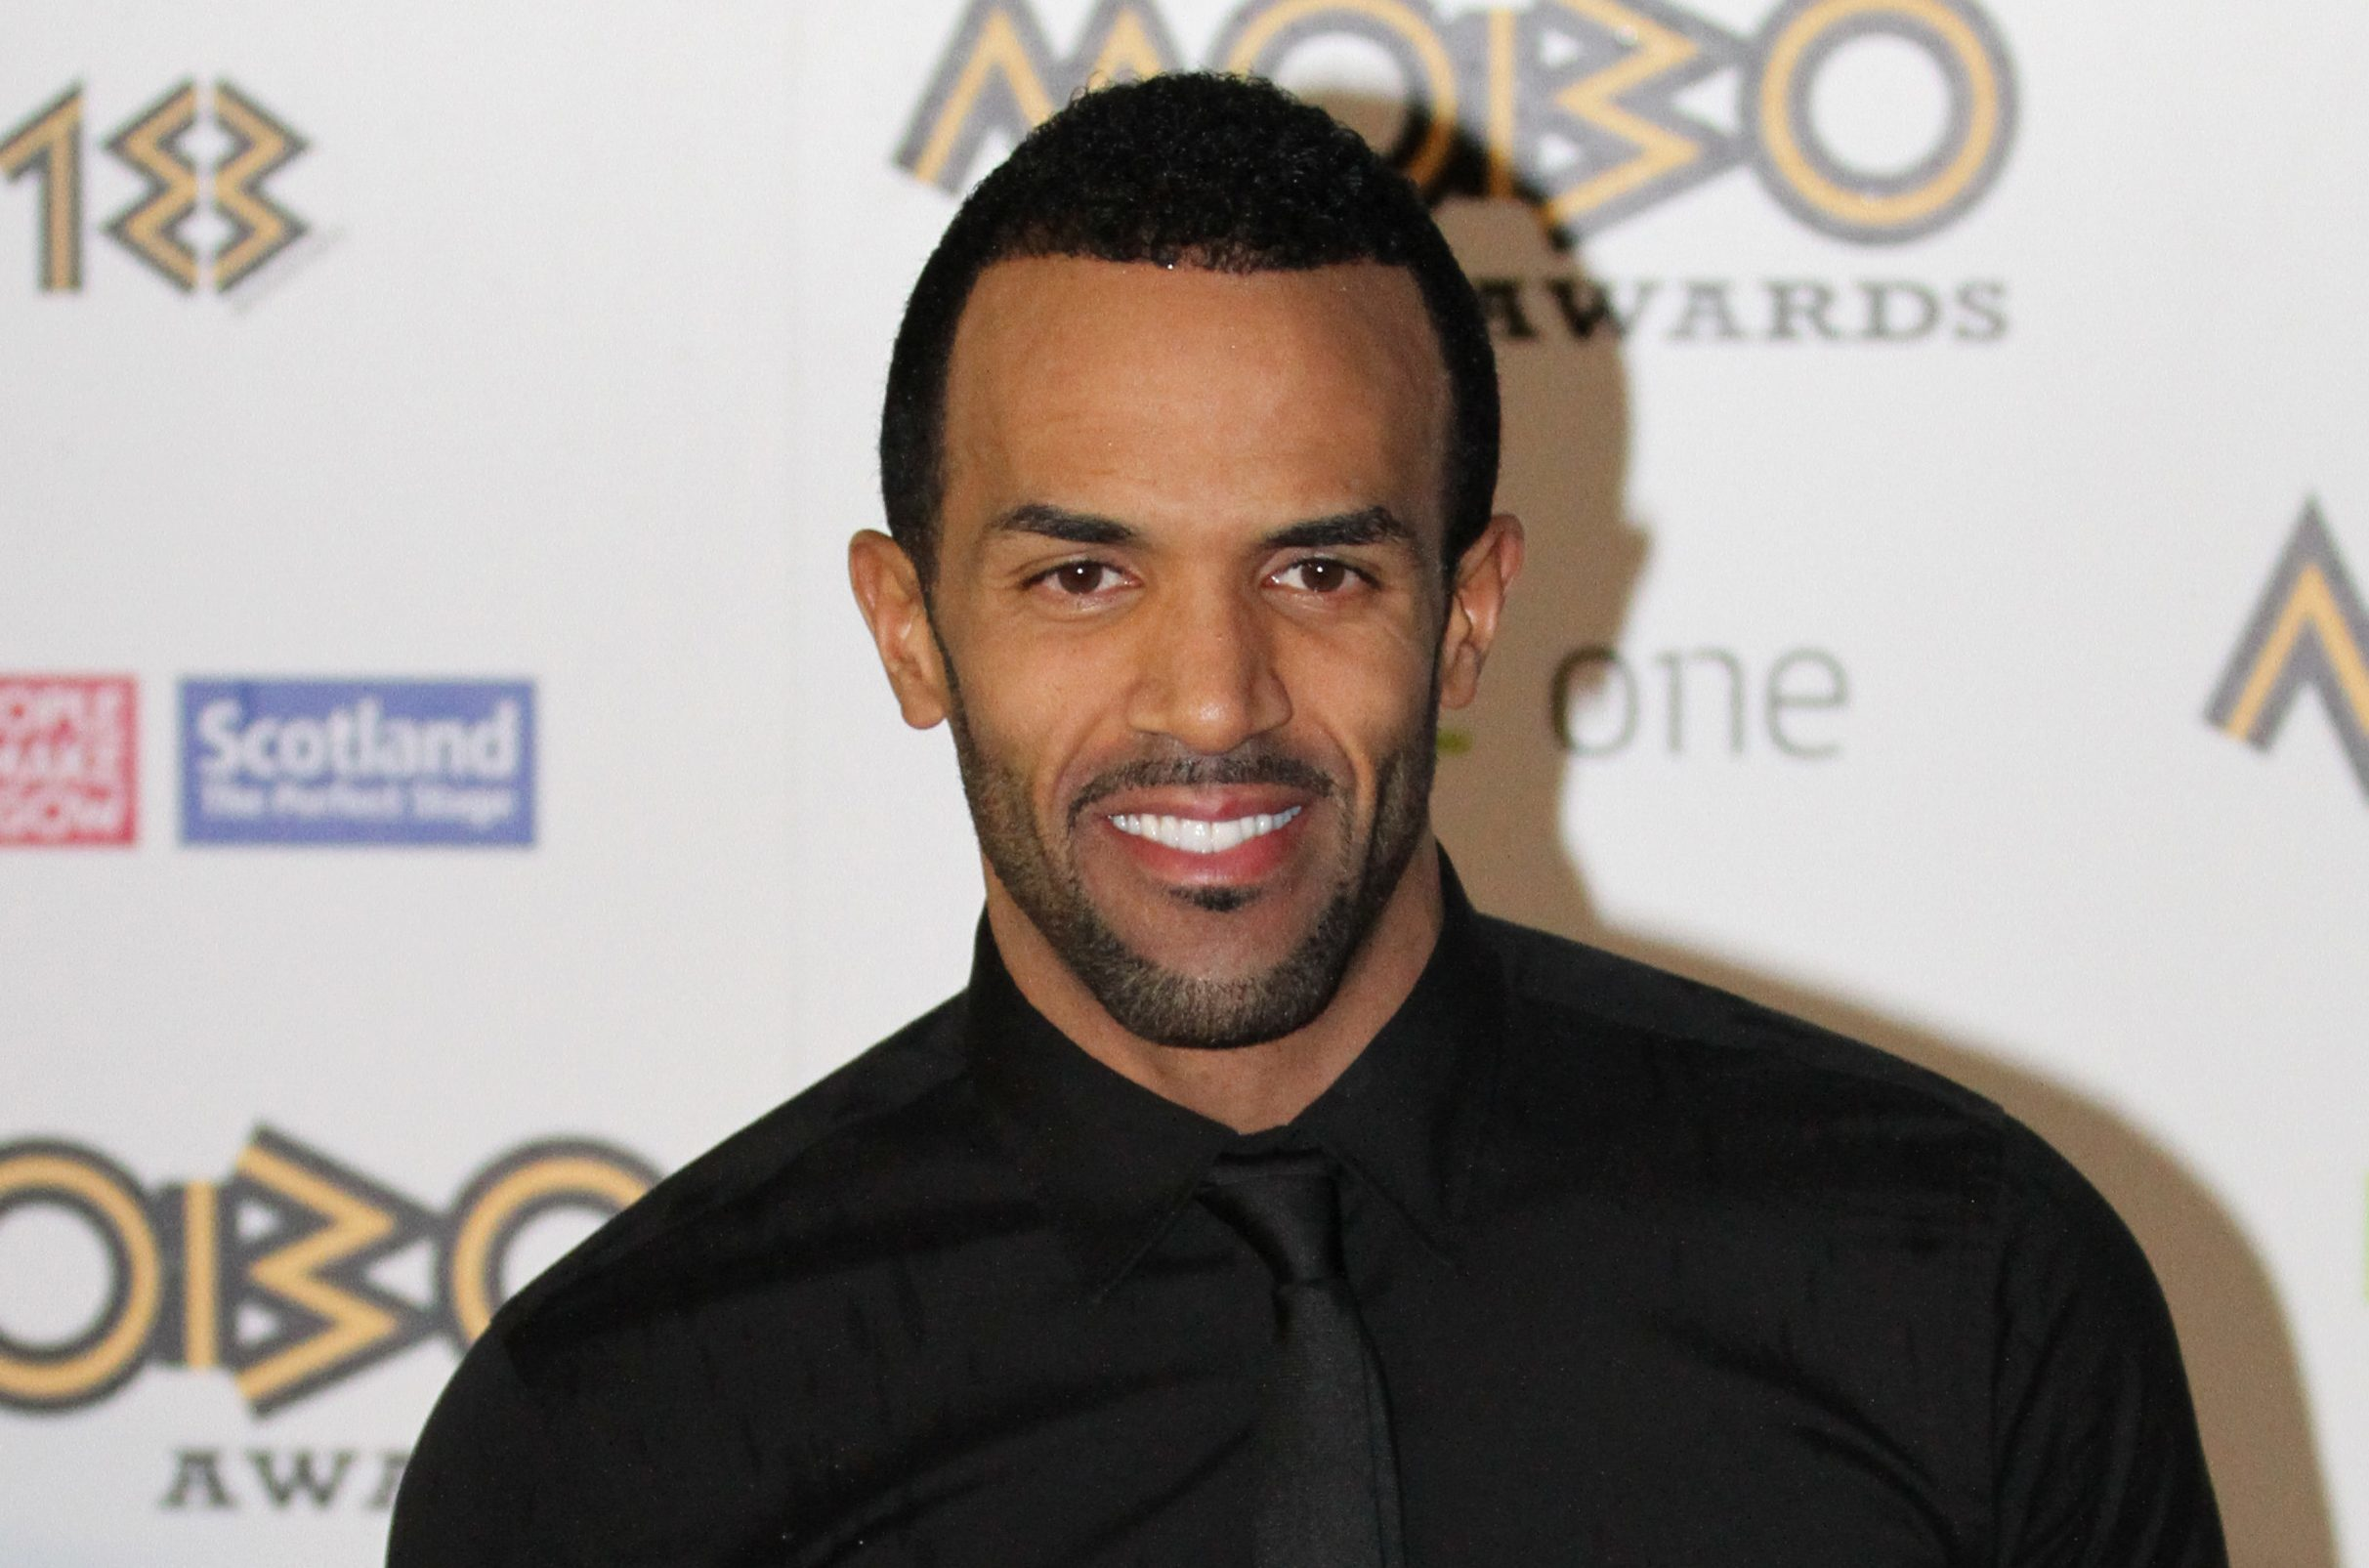 Craig David at the Mobo Awards in Glasgow in 2013.